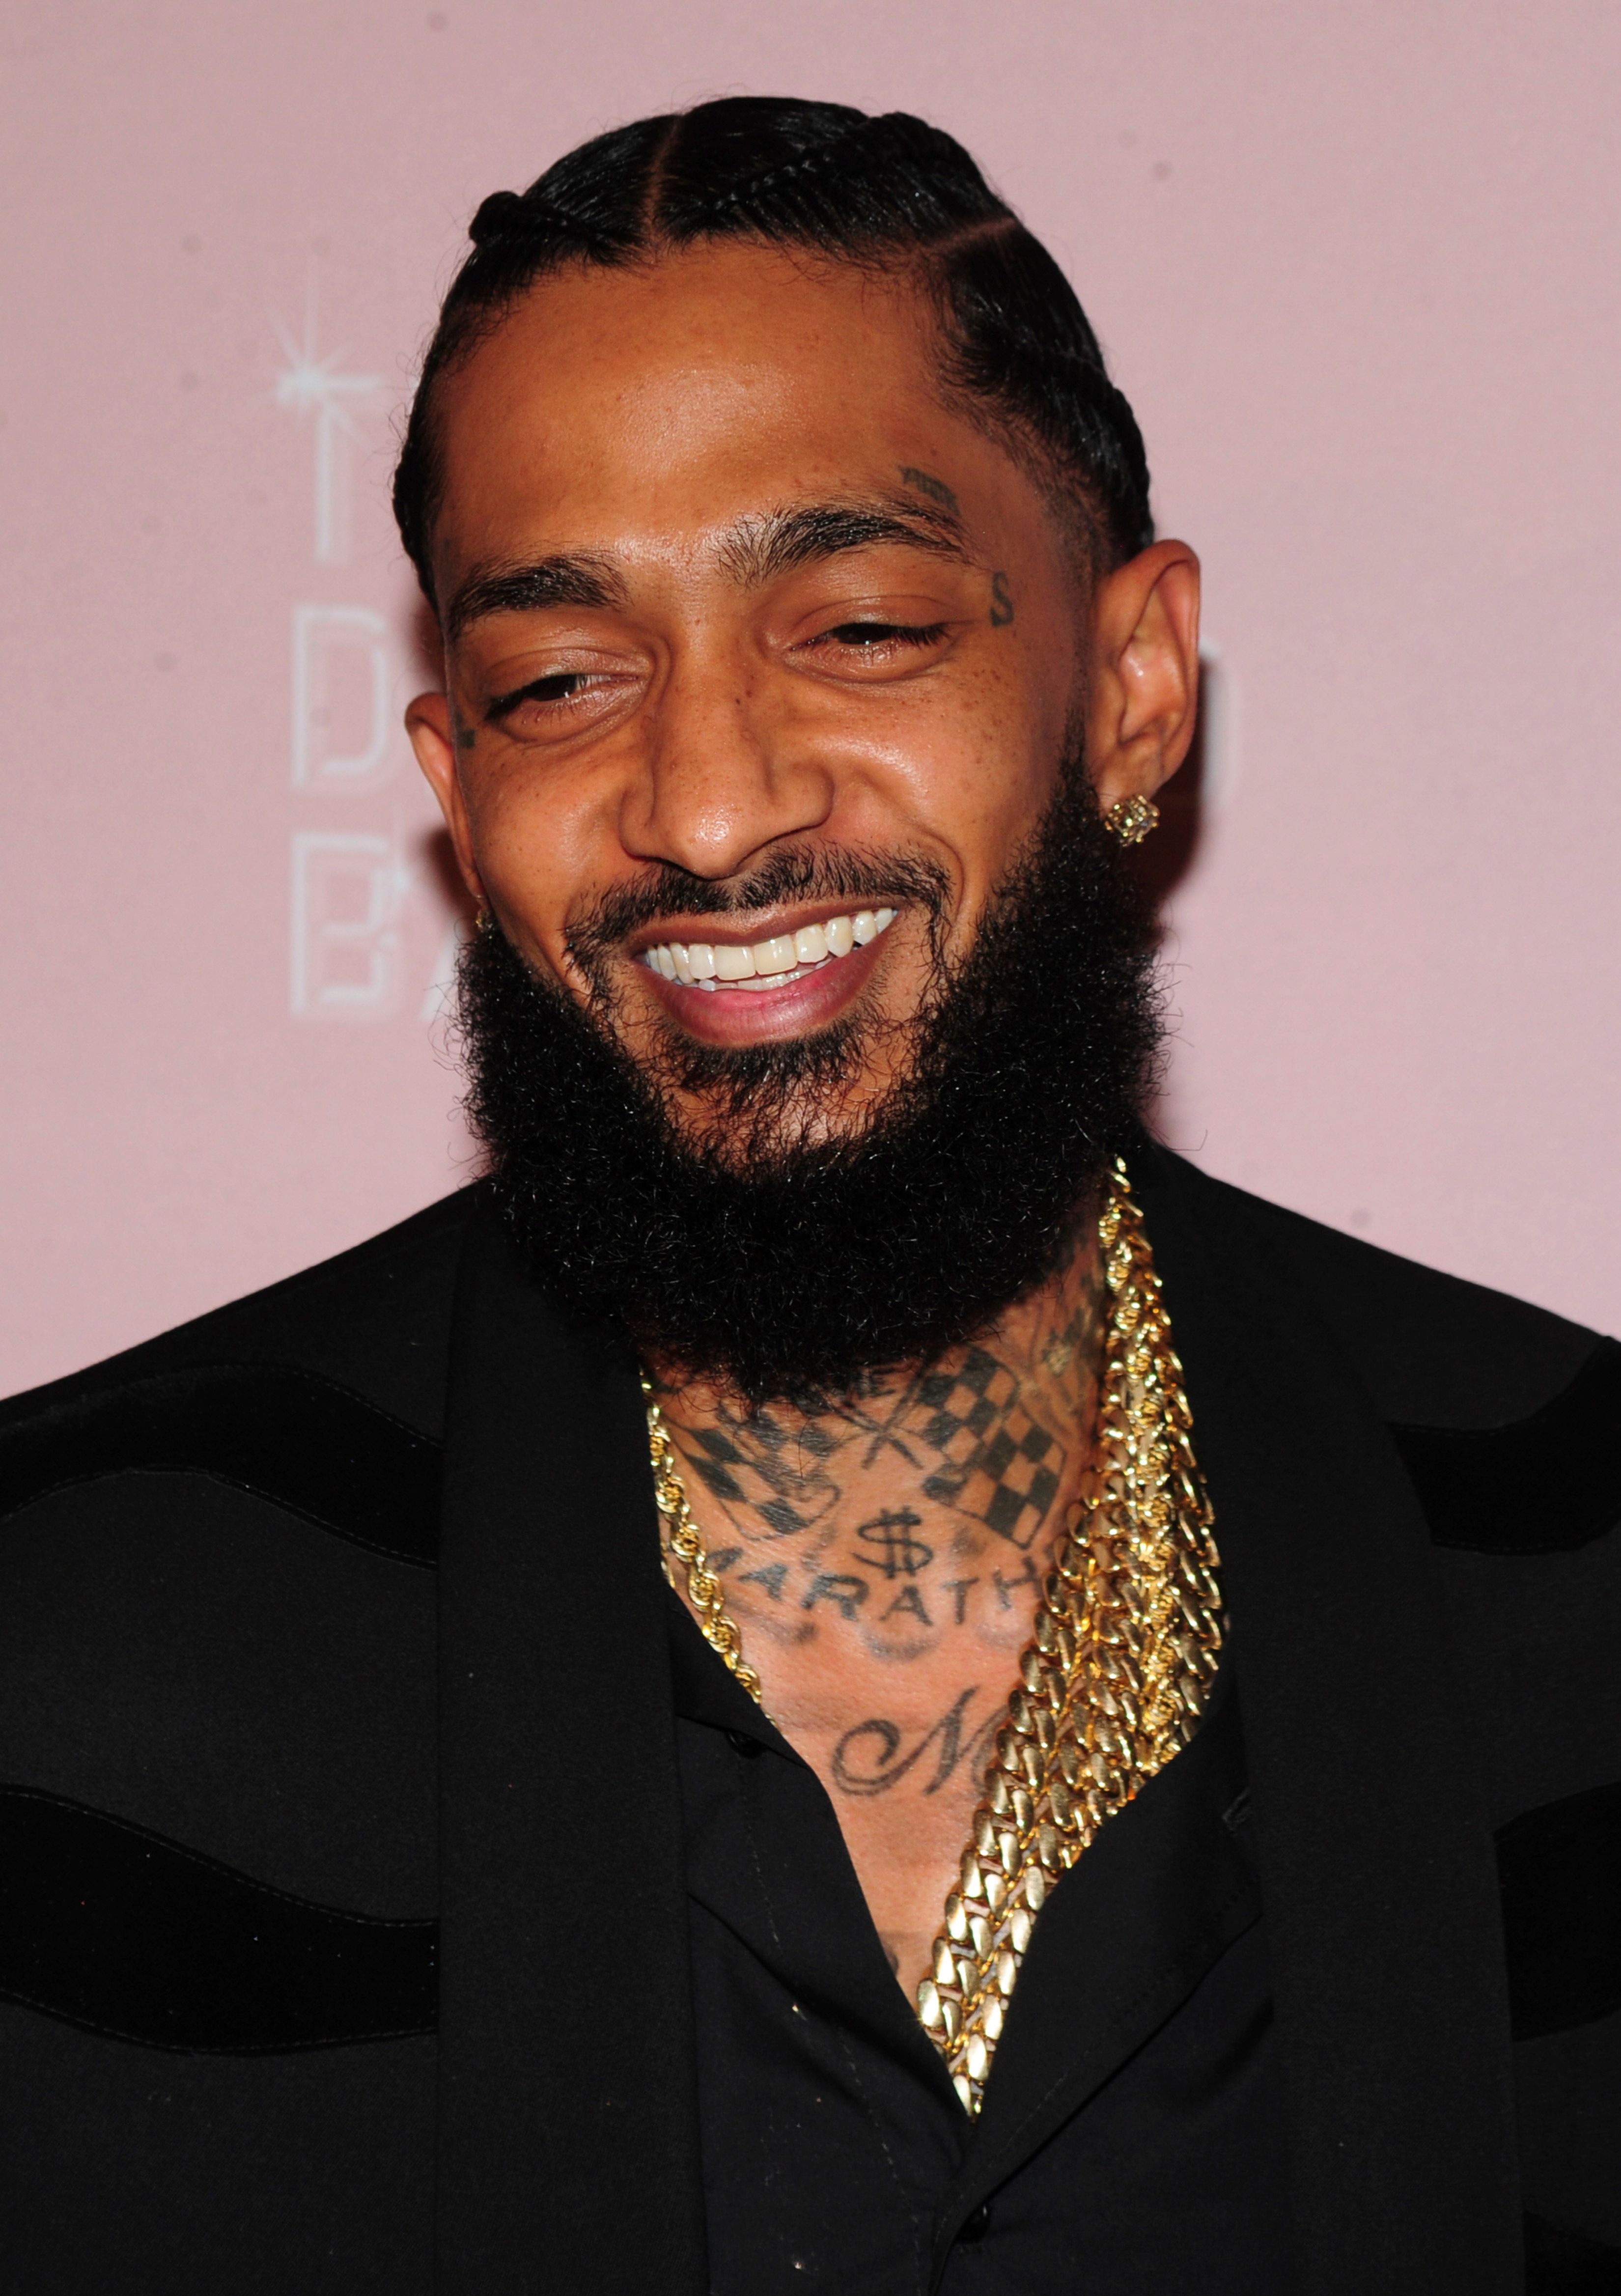 Congress Pays Tribute To Nipsey Hussle's Career And